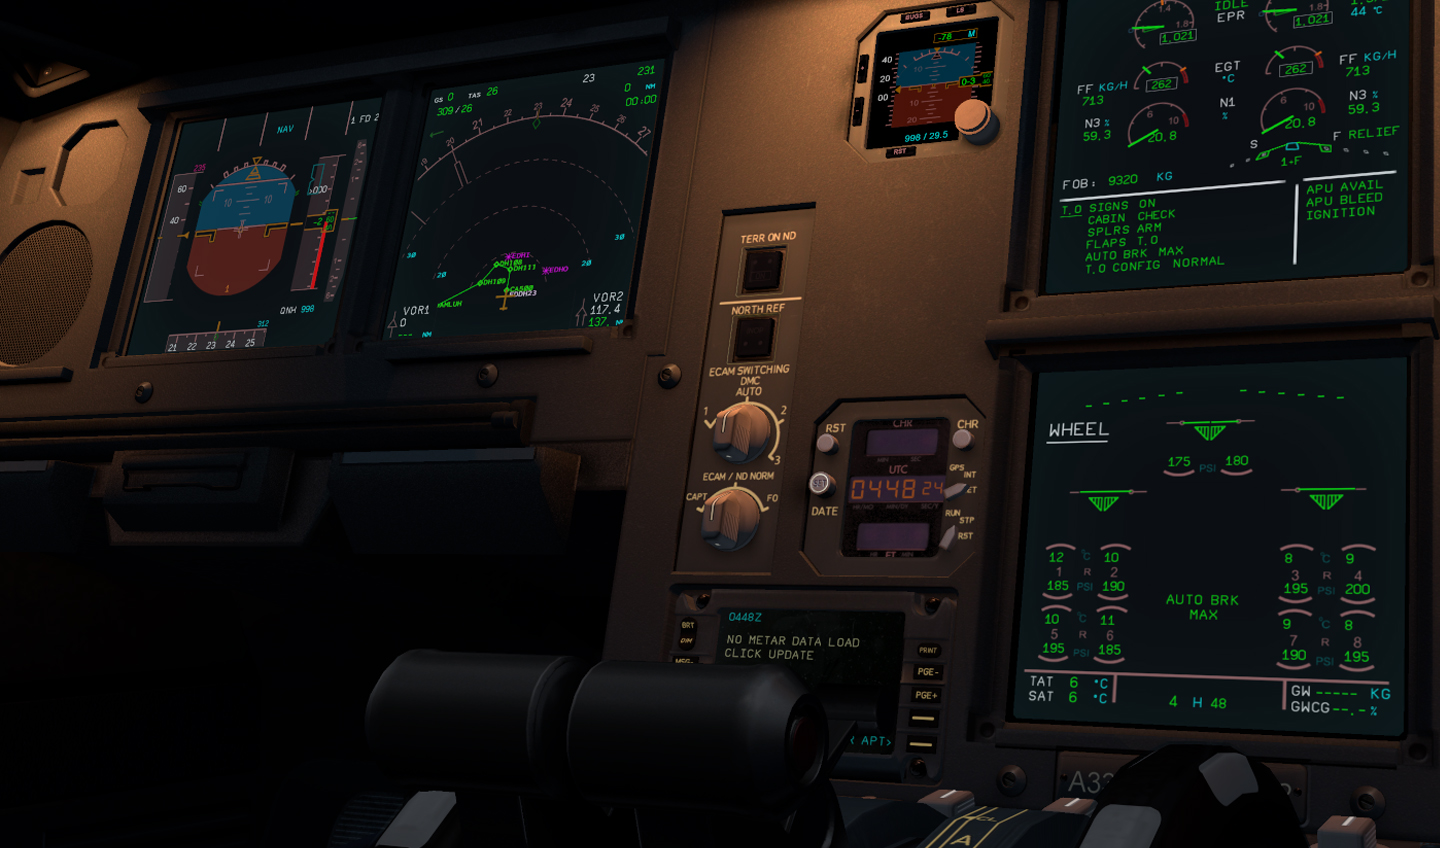 Airbus A330 (JarDesign) available - New Releases and Updates